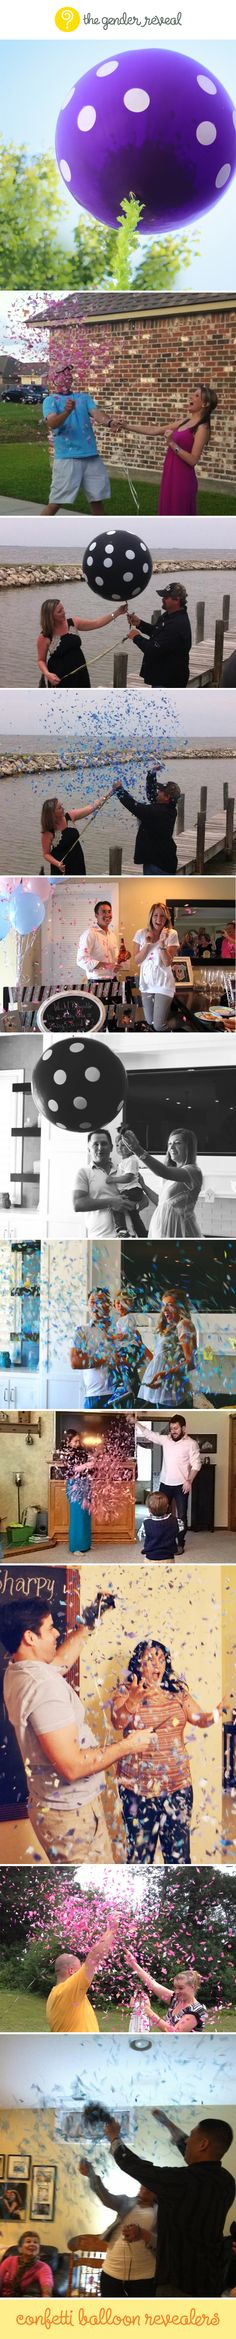 Confetti Balloon Revealers #genderreveal.... I would use this if I ever did a gender reveal!!!!